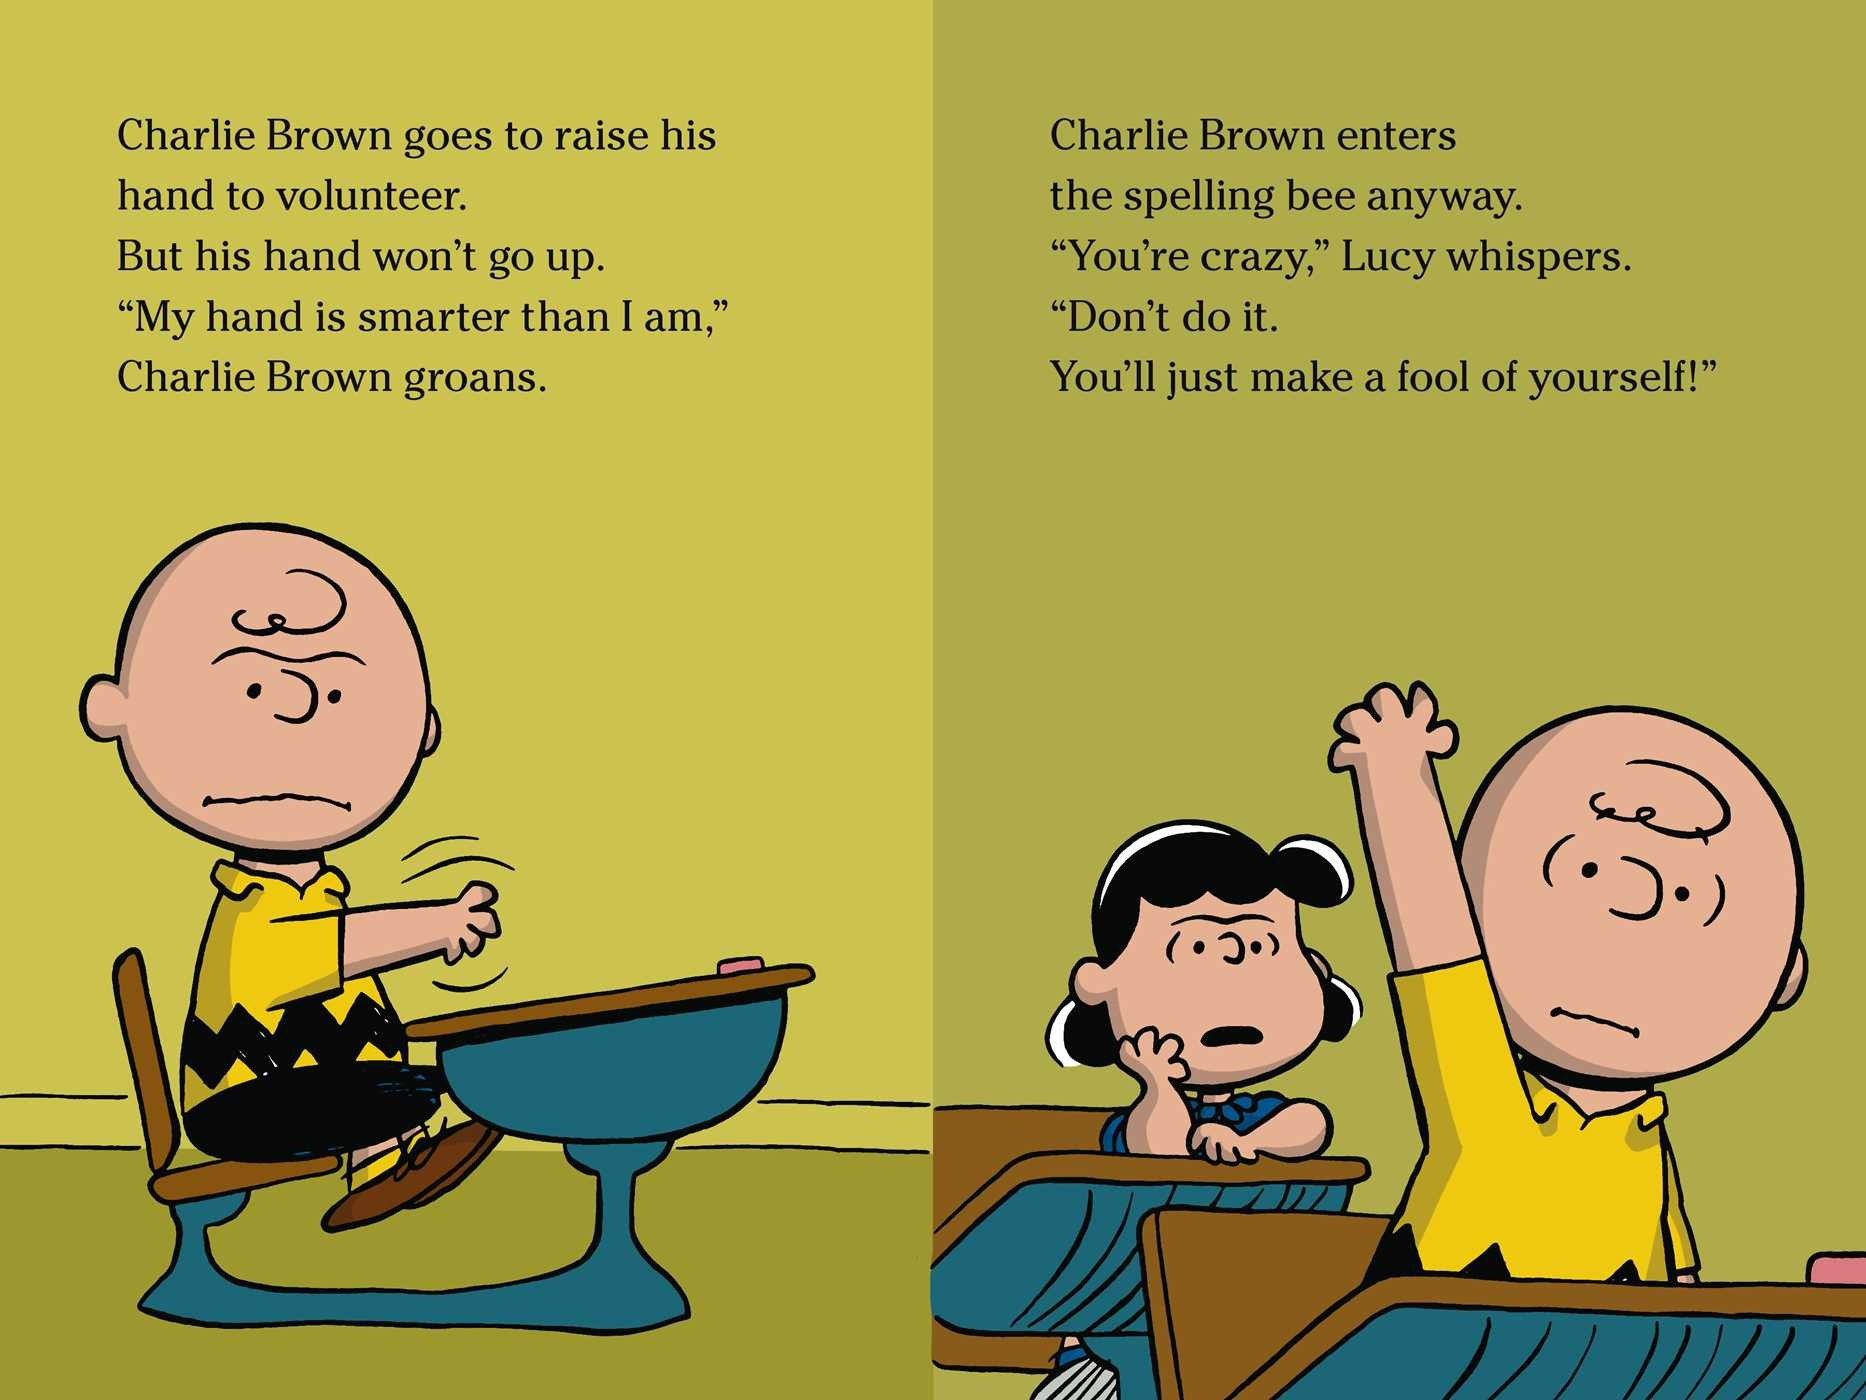 Time for school charlie brown 9781481436052.in04